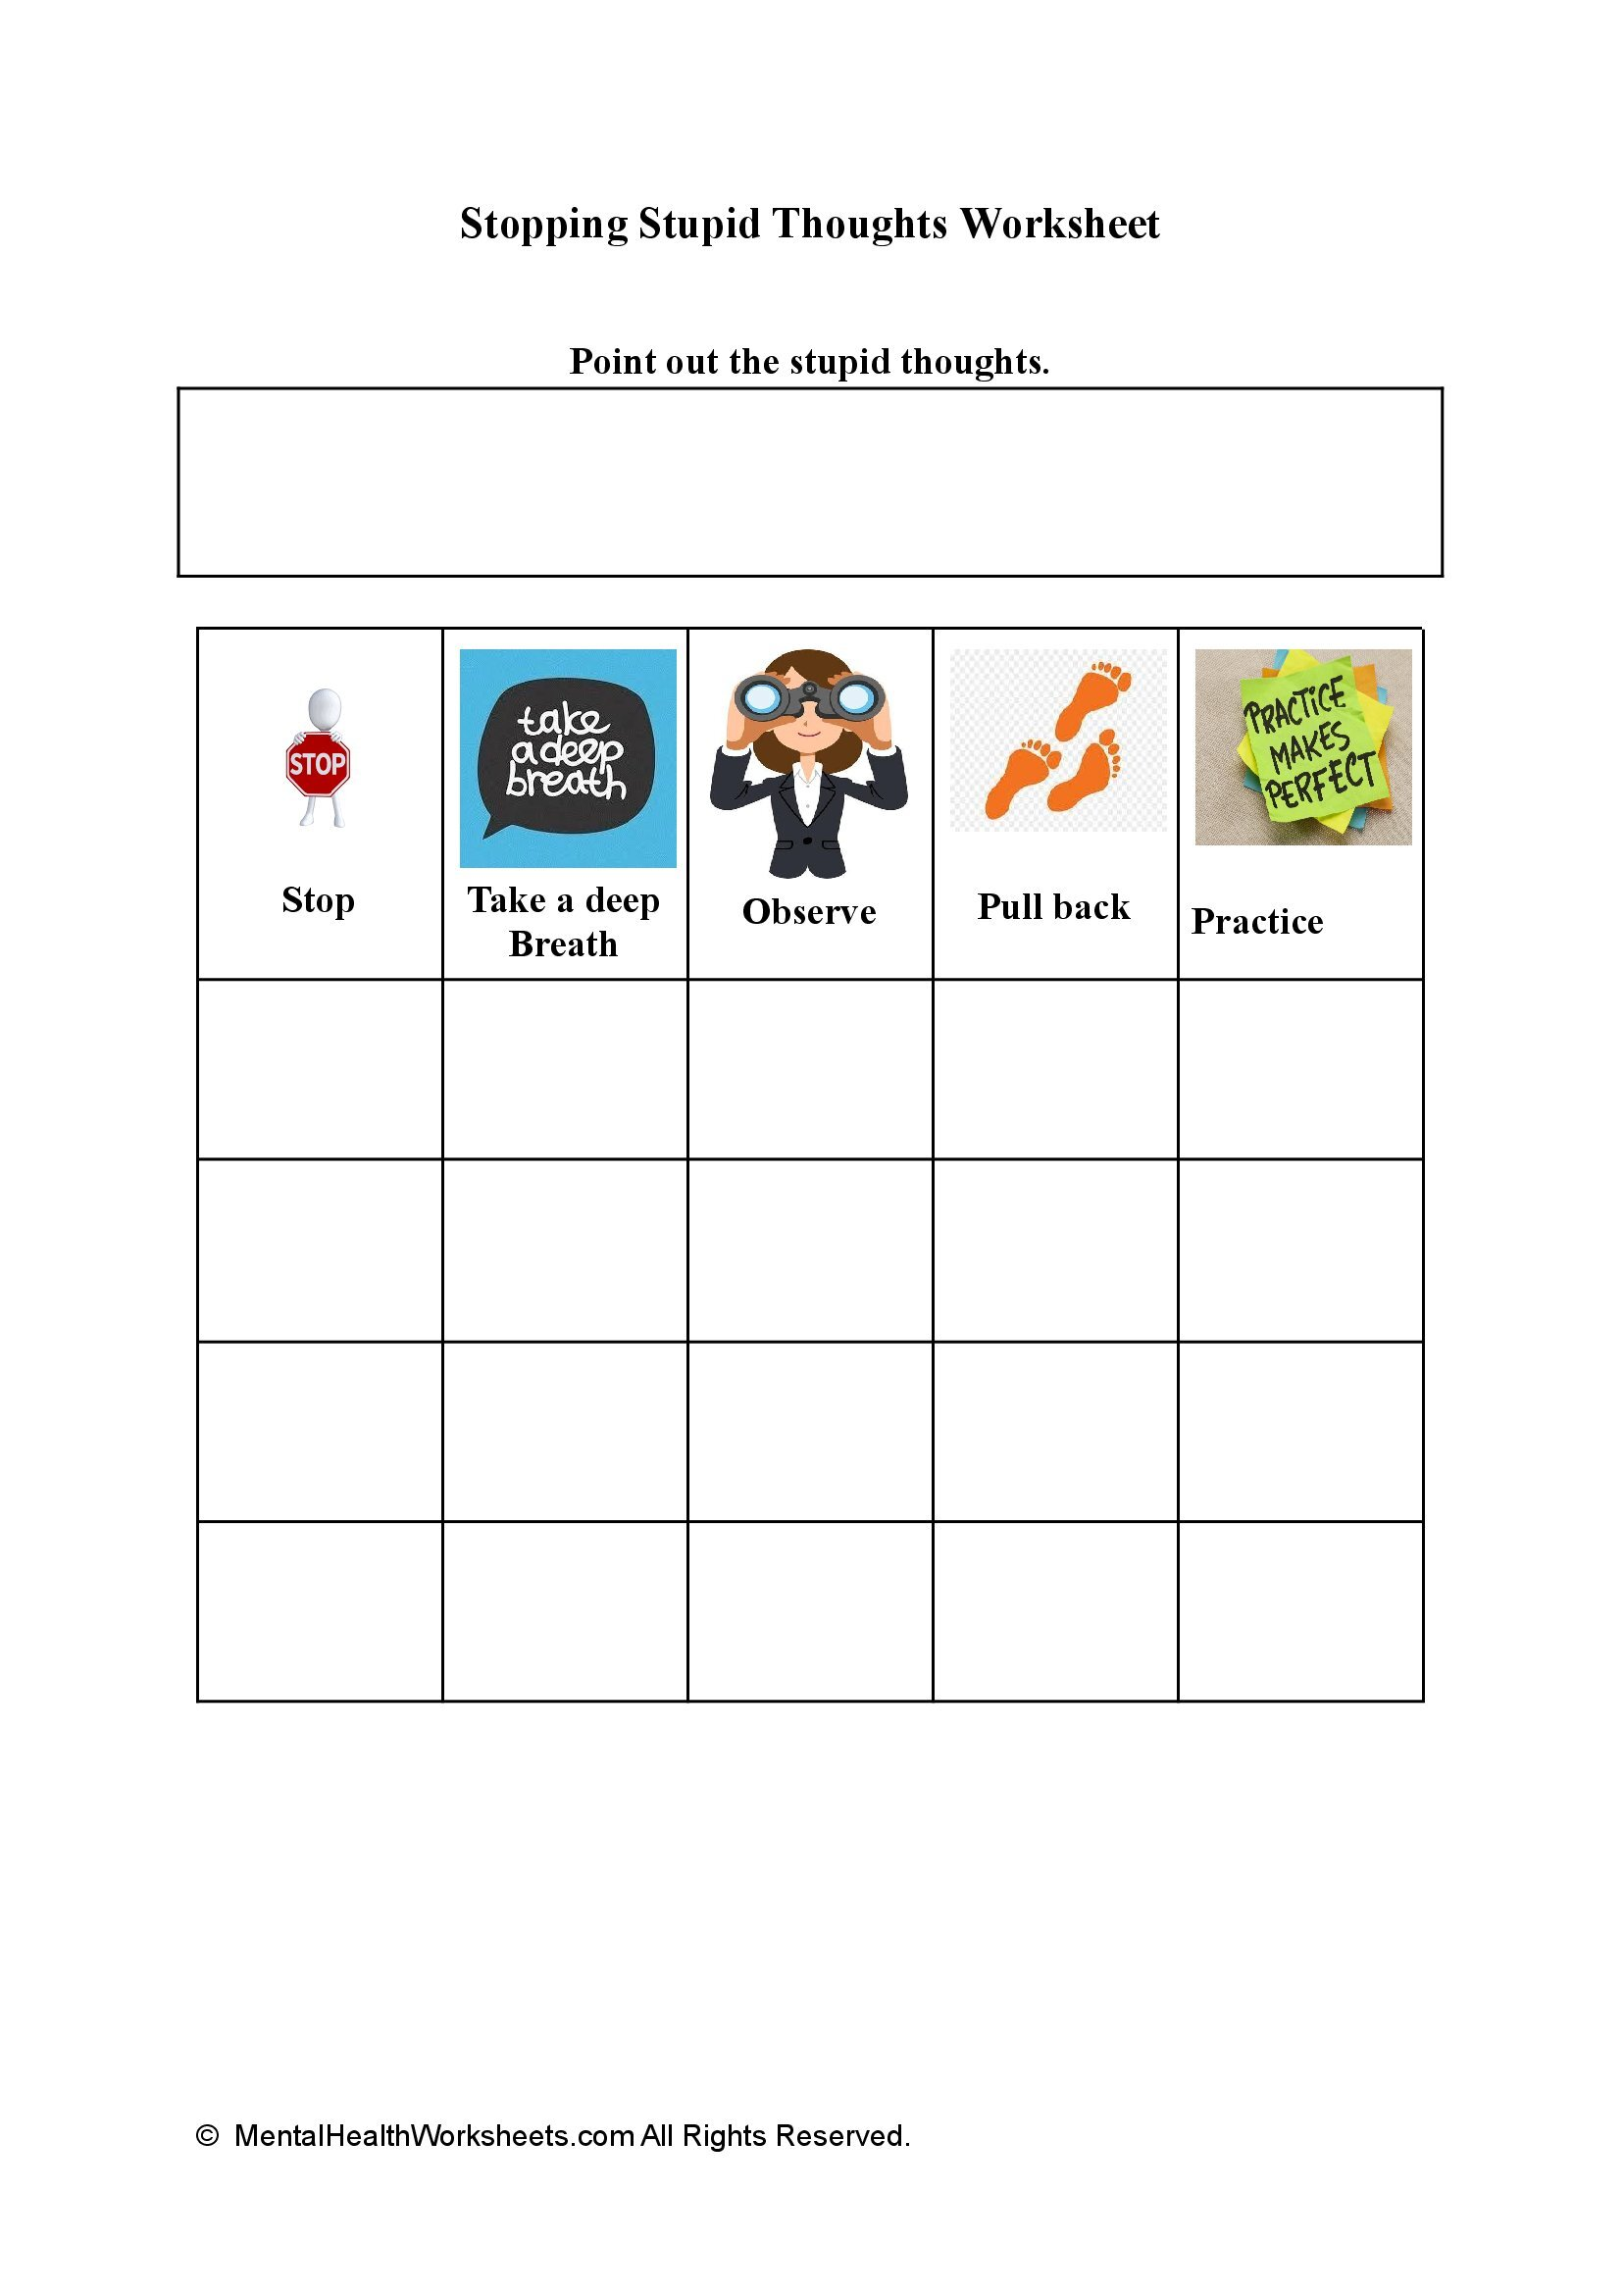 Stopping Stupid Thoughts Worksheet